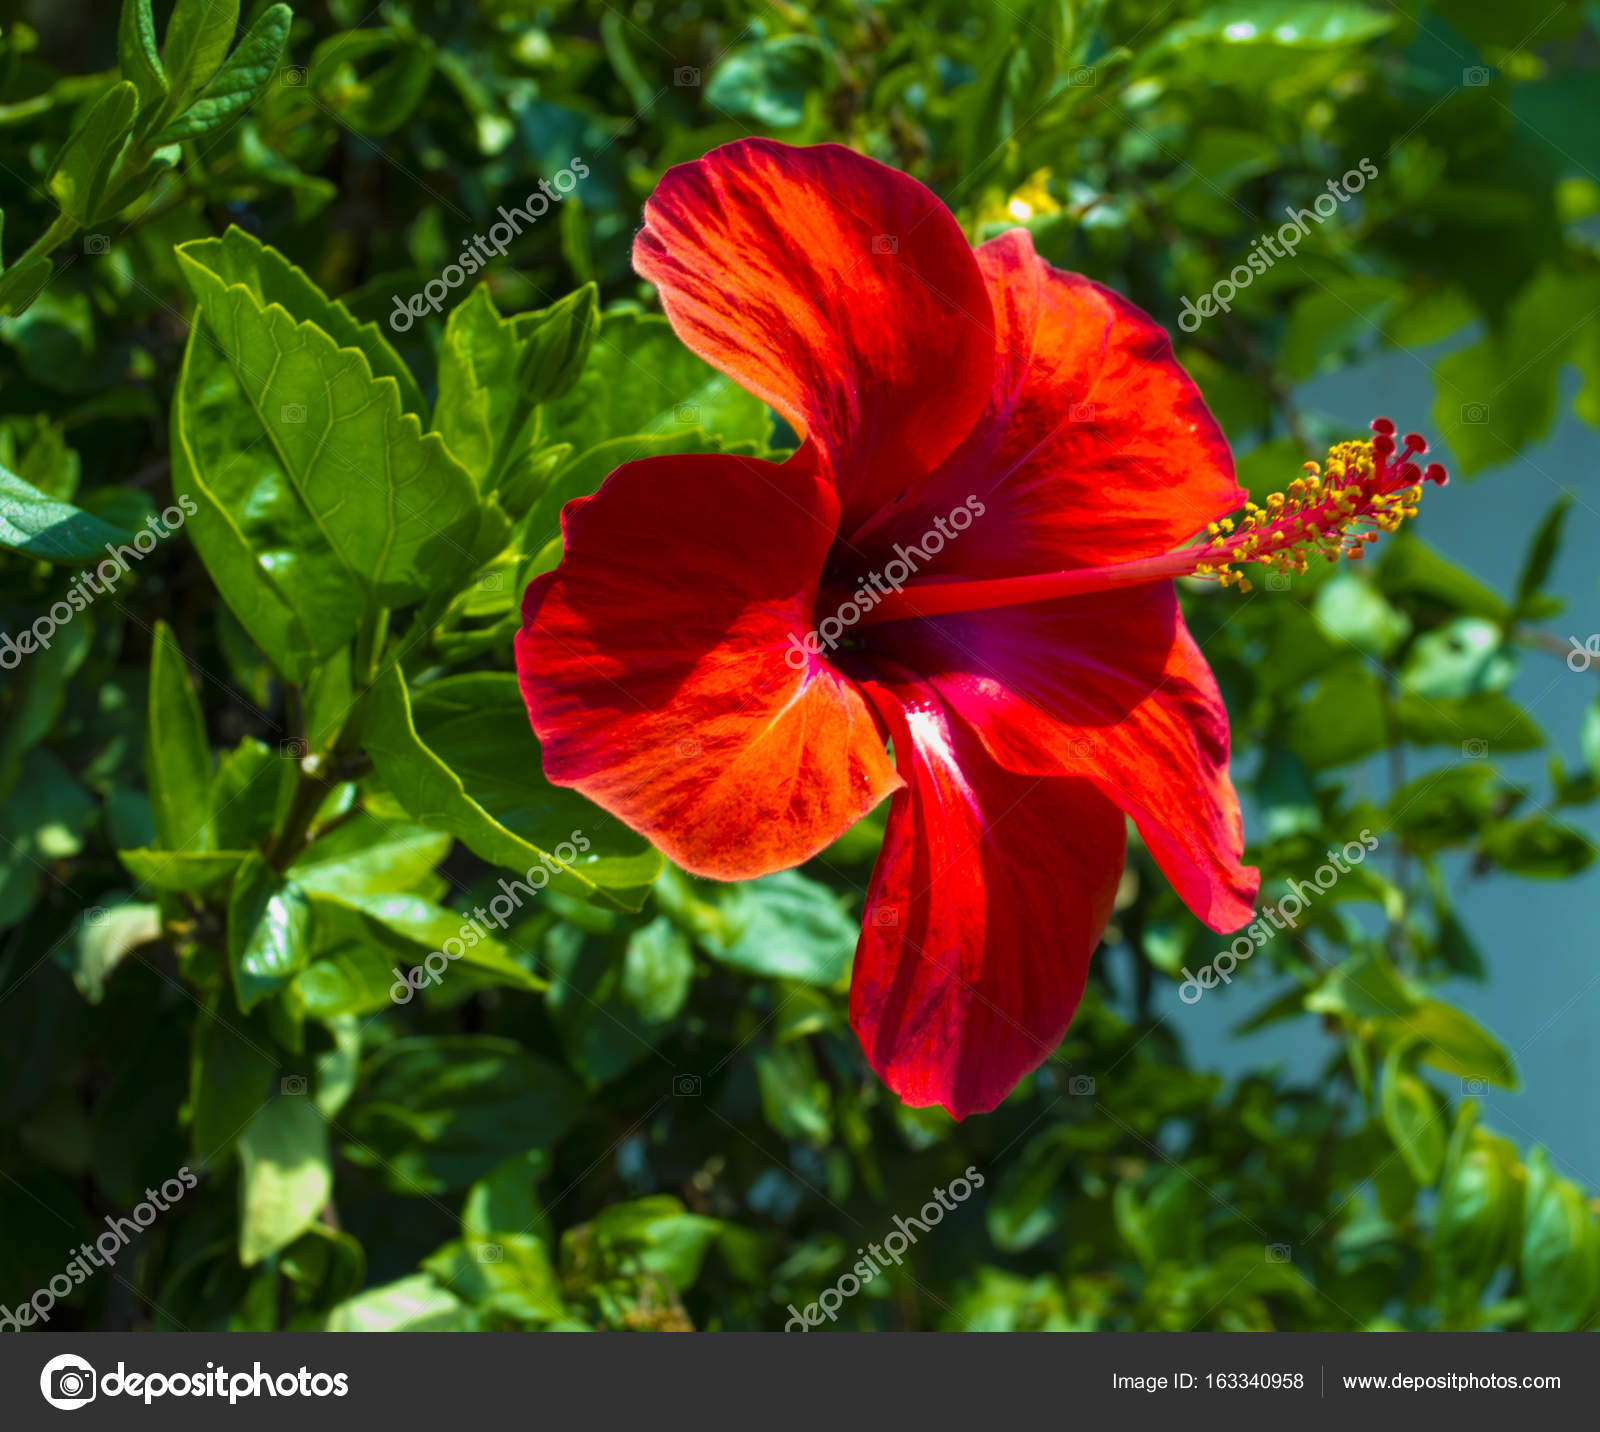 Hibiscus Karkade Hibiscus Flower Red Hibiscus Flower On A Gre Stock Photo Image By C Weter777 163340958